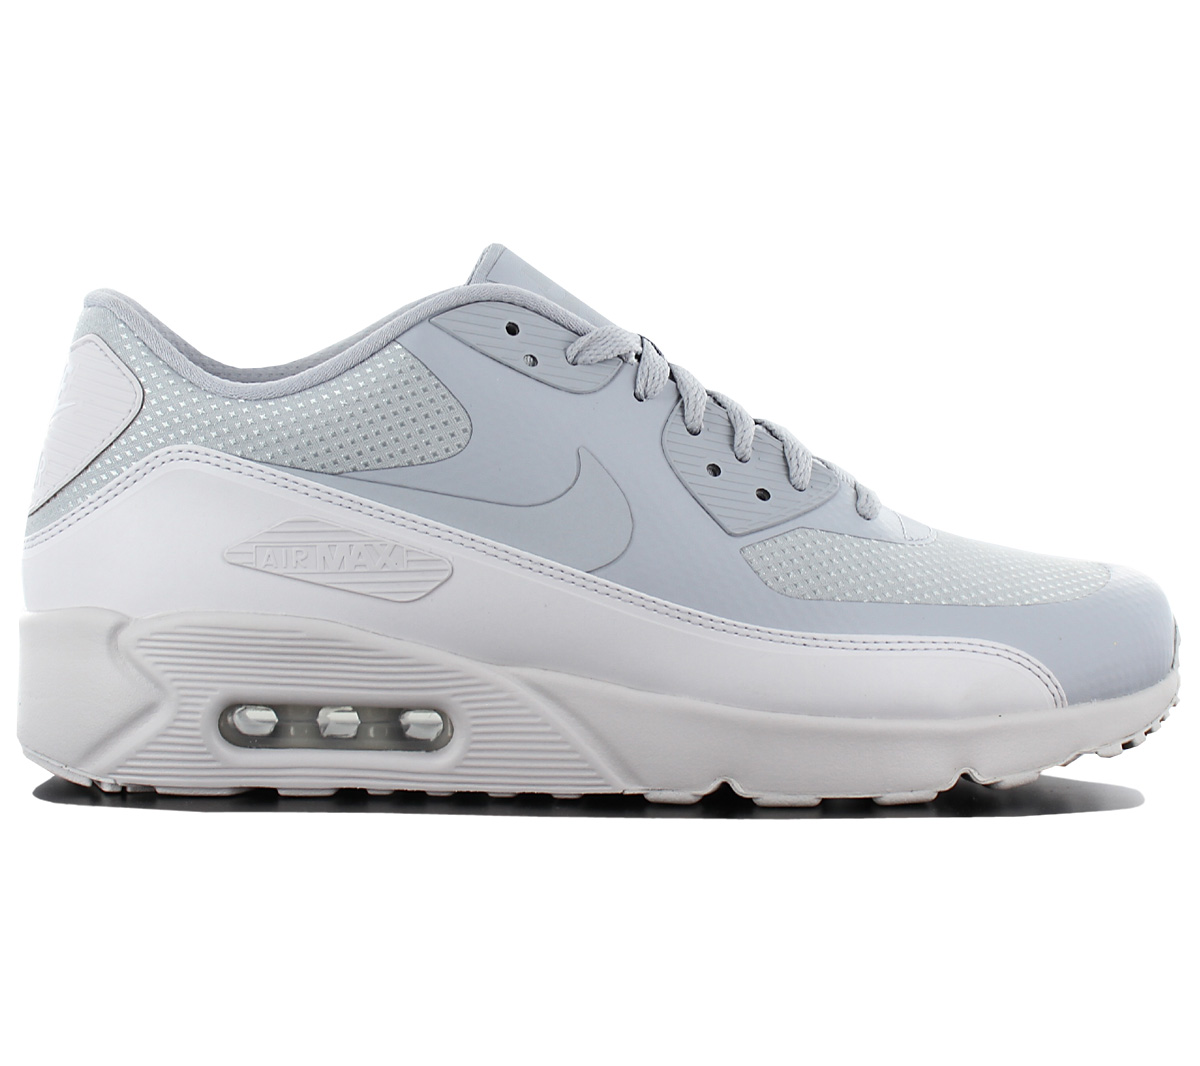 Nike Nike Air Max 90 Ultra 2.0 Essential sneakers Blue from Farfetch:Linkshare:Affiliate:CPA:US:US People  People